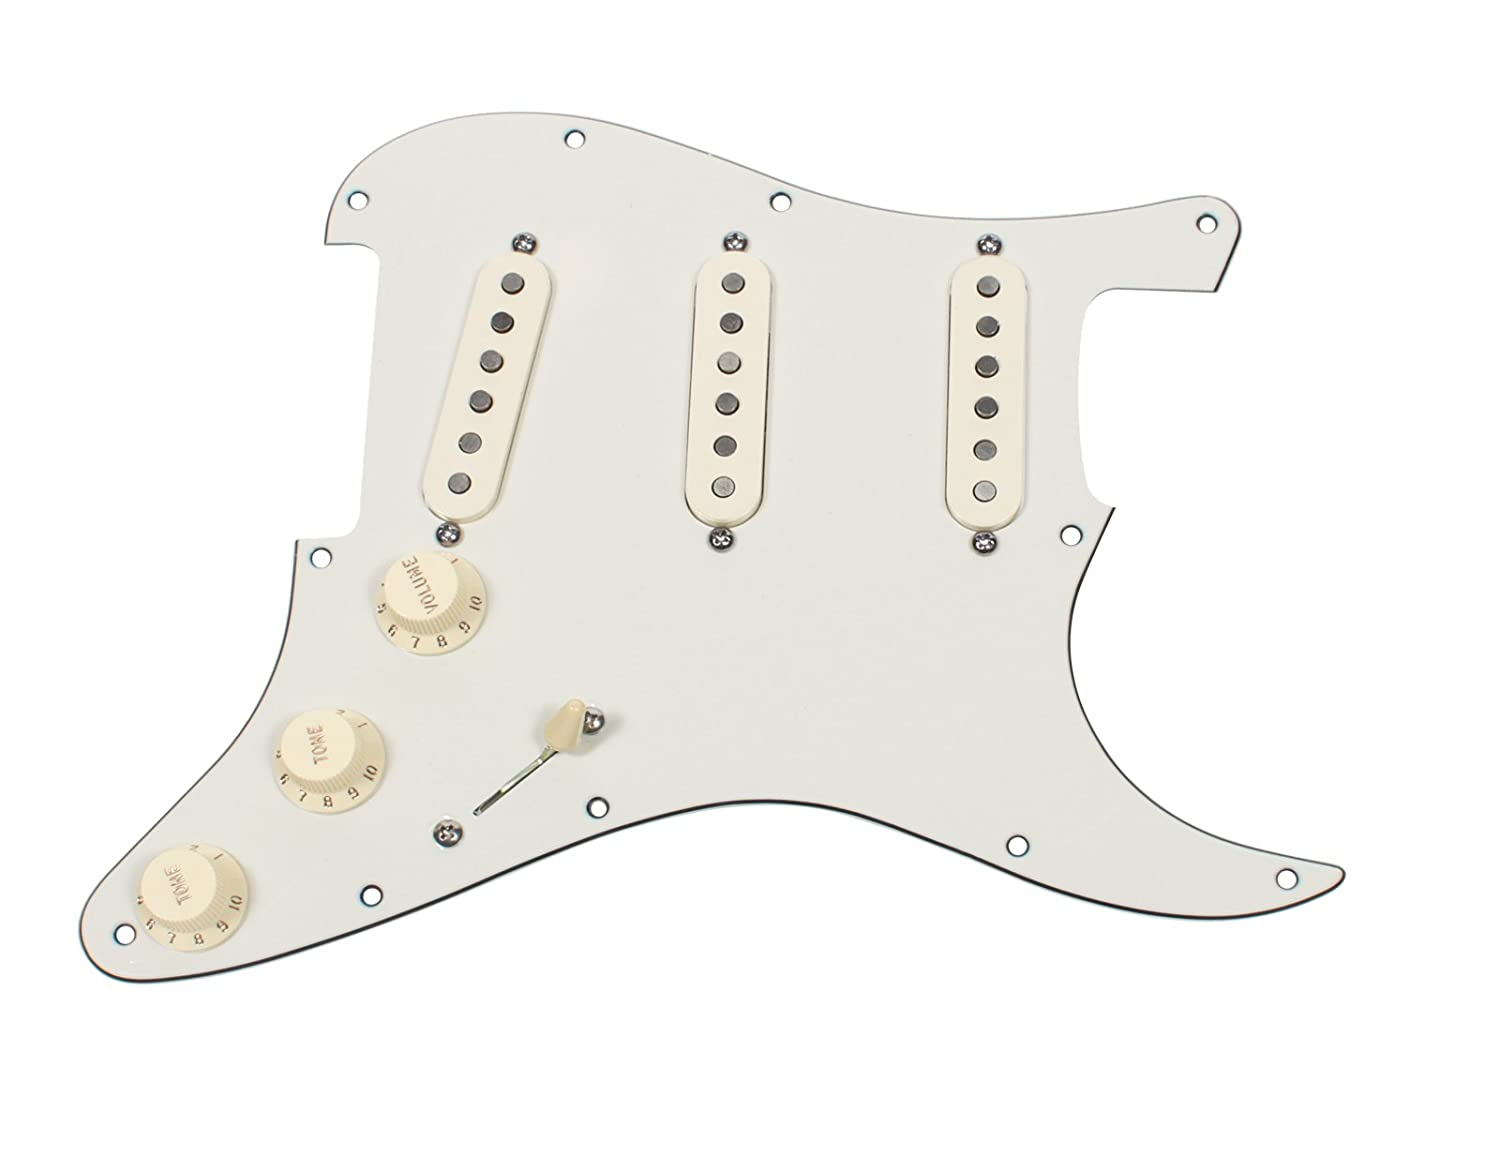 Fender Vintage Noiseless Stratocaster Pickups Set Amazon Com >> Amazon Com Fender Strat Loaded Pickguard Vintage Noiseless